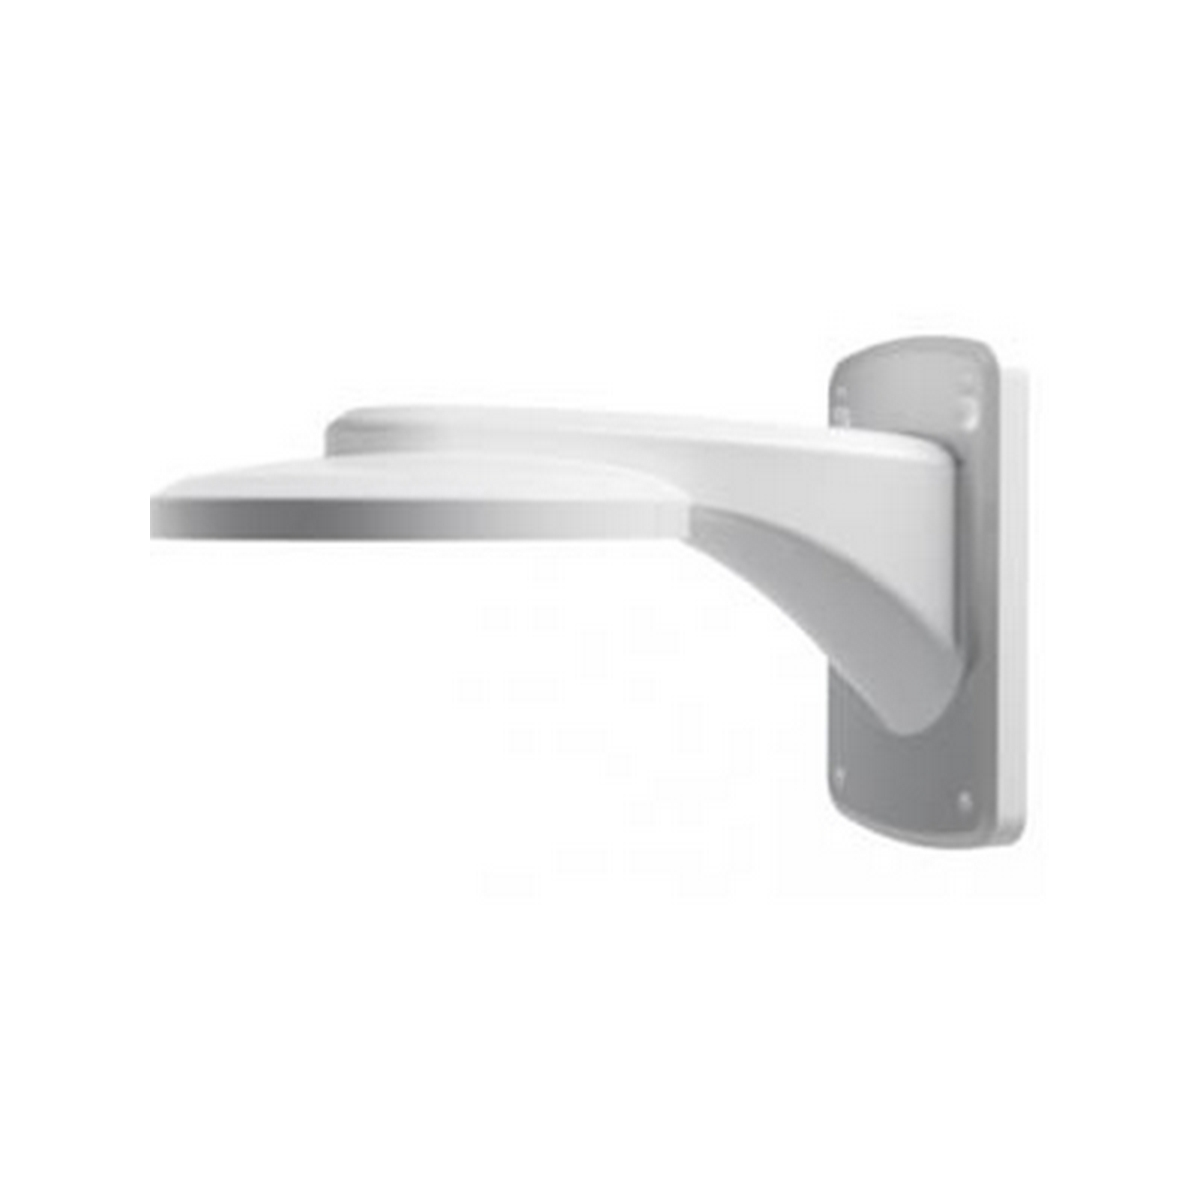 Dahua Material: Aluminum,Color: White,Dimension: 250mm*160mm*102mm,Weight: 0.8Kg Wall Mount Bracket PFB201W